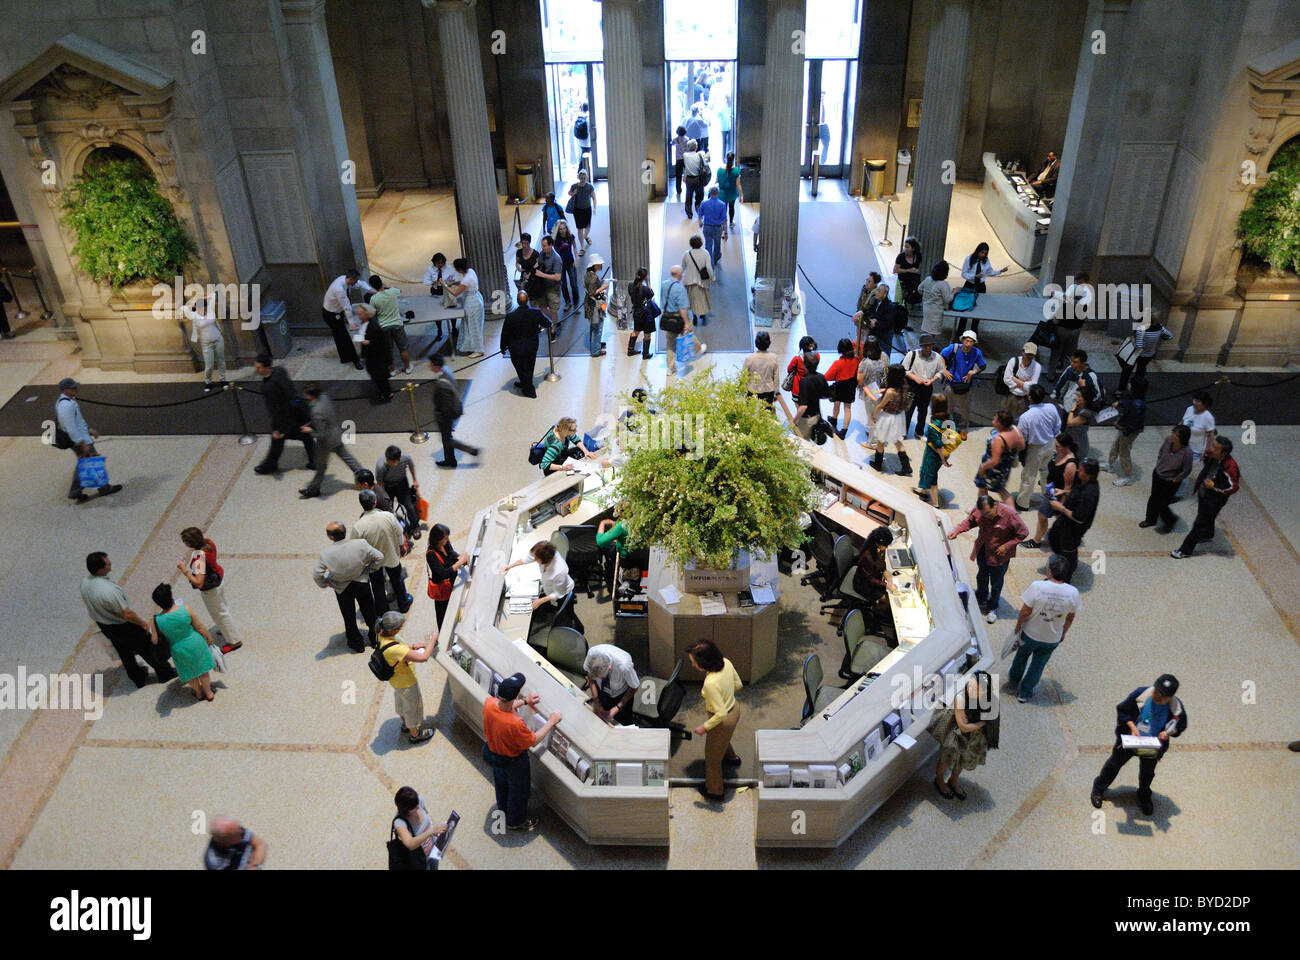 The Great Hall at the Metropolitan Museum of Art in New York City. May 4, 2010. Stock Photo